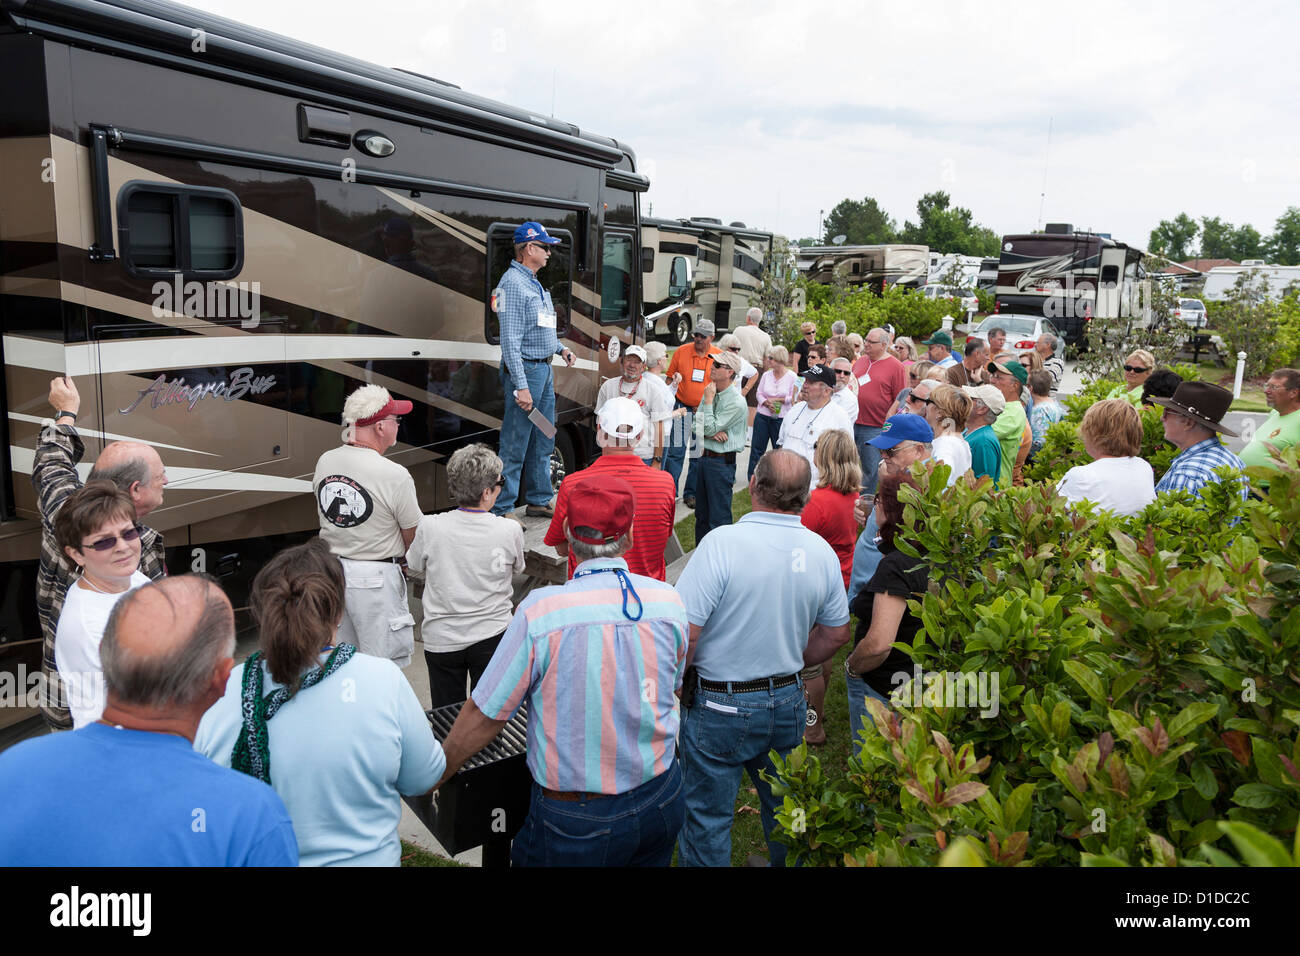 Man giving demonstration during a motor coach rally at RV resort in Brunswick, Georgia - Stock Image